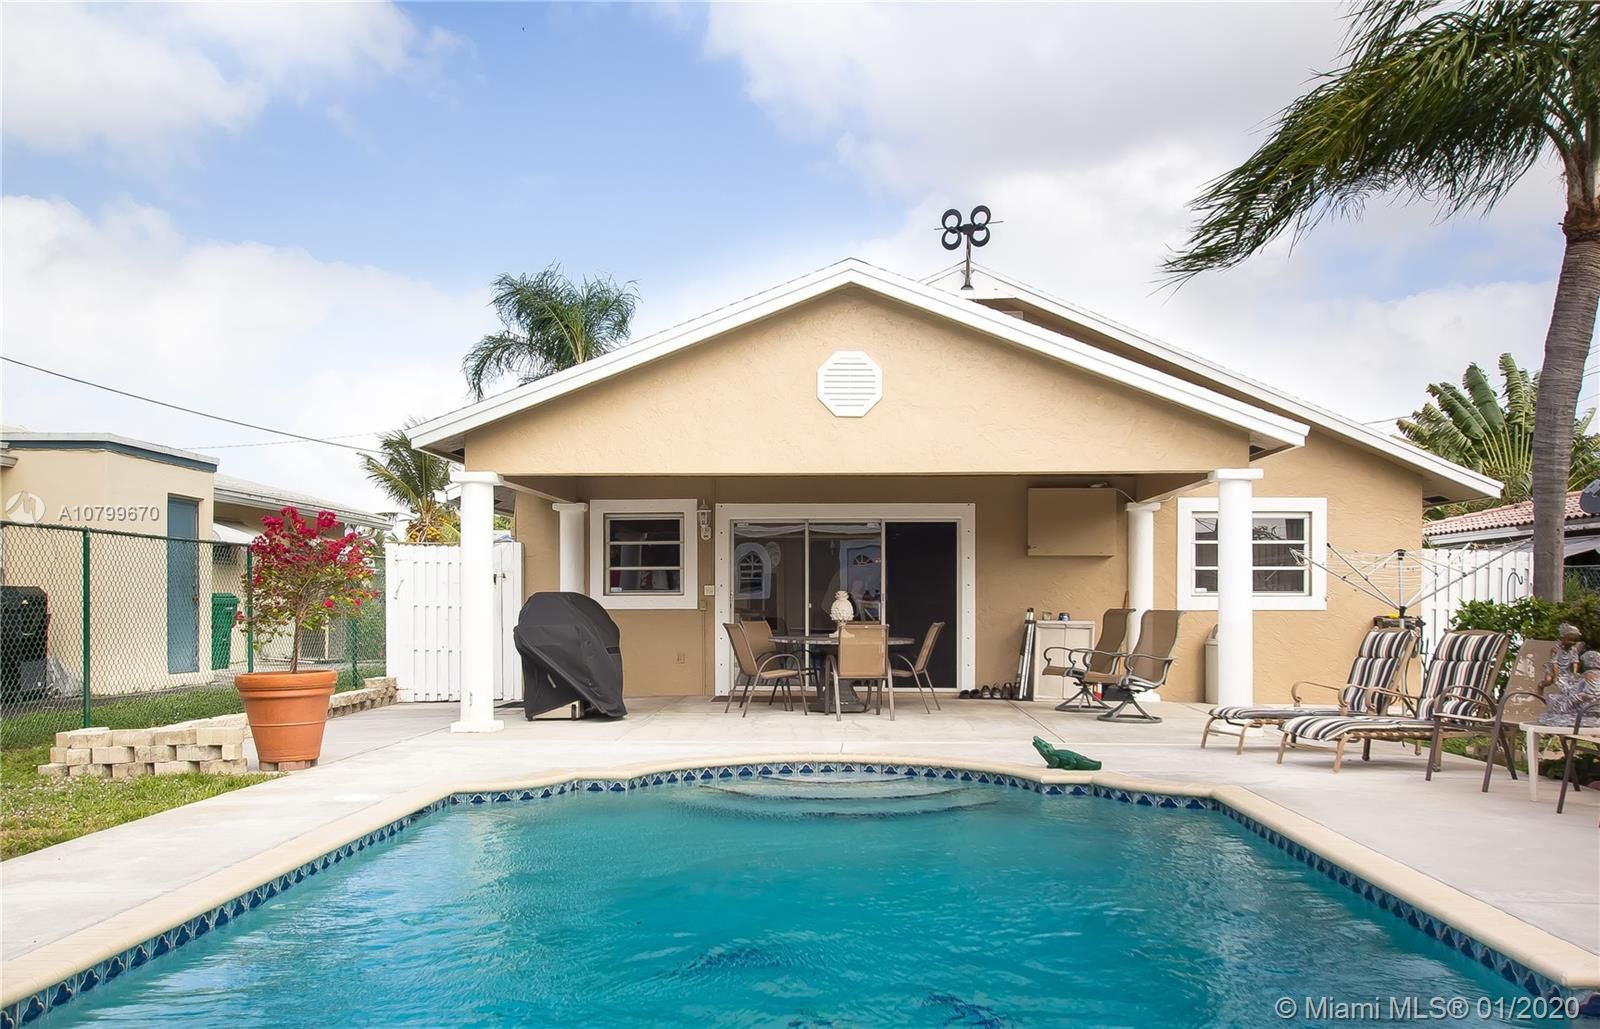 GREAT OPPORTUNITY IN DANIA BEACH. BEAUTIFUL 3 BEDROOM 3 BATH POOL HOME JUST EAST OF US-1 ONLY MINUTES TO THE BEACH. ENTER TO A BEAUTIFUL FENCED IN POOL AREA. LARGE COVERED PATIO WITH GORGEOUS CYPRESS WOOD CEILINGS OVER LOOKING POOL AREA. LARGE FREESTANDING SHED/WORKSHOP/STORAGE (COULD POSSIBLY BE TURNED INTO GUEST HOUSE OR CABANA BATH, THE POSSIBILITIES ARE ENDLESS). EXTERIOR OF PROPERTY FRESHLY PAINTED. HIGH CEILINGS. CROWN MOLDING. TILE THROUGHOUT. OPEN CONCEPT KITCHEN HAS STAINLESS STEEL APPLIANCES WITH CENTER ISLAND THAT OPENS UP TO THE DINING & LIVING ROOM, PERFECT FOR ENTERTAINING. IN-LAW QUARTERS ATTACHED AND OPENED TO HOUSE (3RD BEDROOM, FULL BATH, LIVING AND DINING AREA) OR COULD BE CLOSED OFF, HAS PRIVATE ENTRANCE CAN BE RENTAL OPPORTUNITY. SHUTTERS. NO HOA. A MUST SEE!